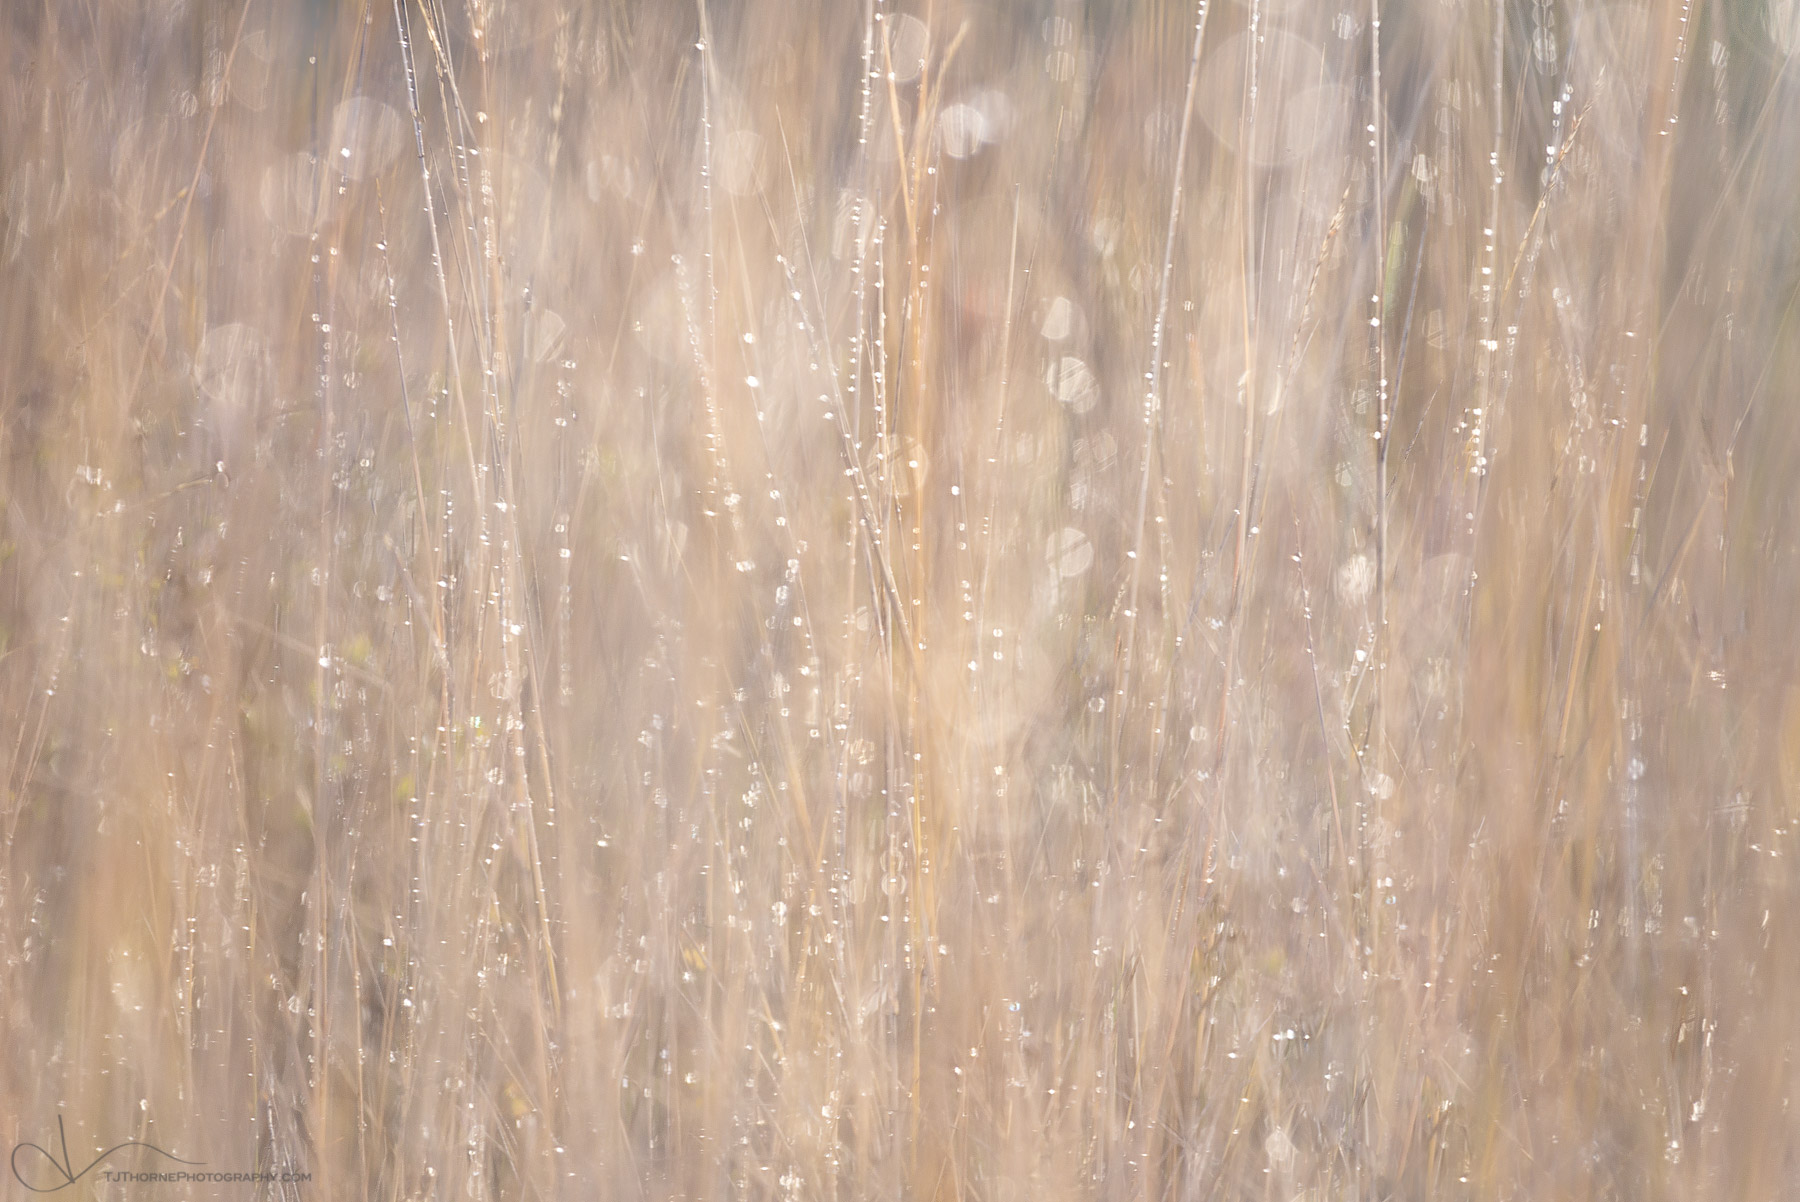 rain, grass, autumn, washington, abstract